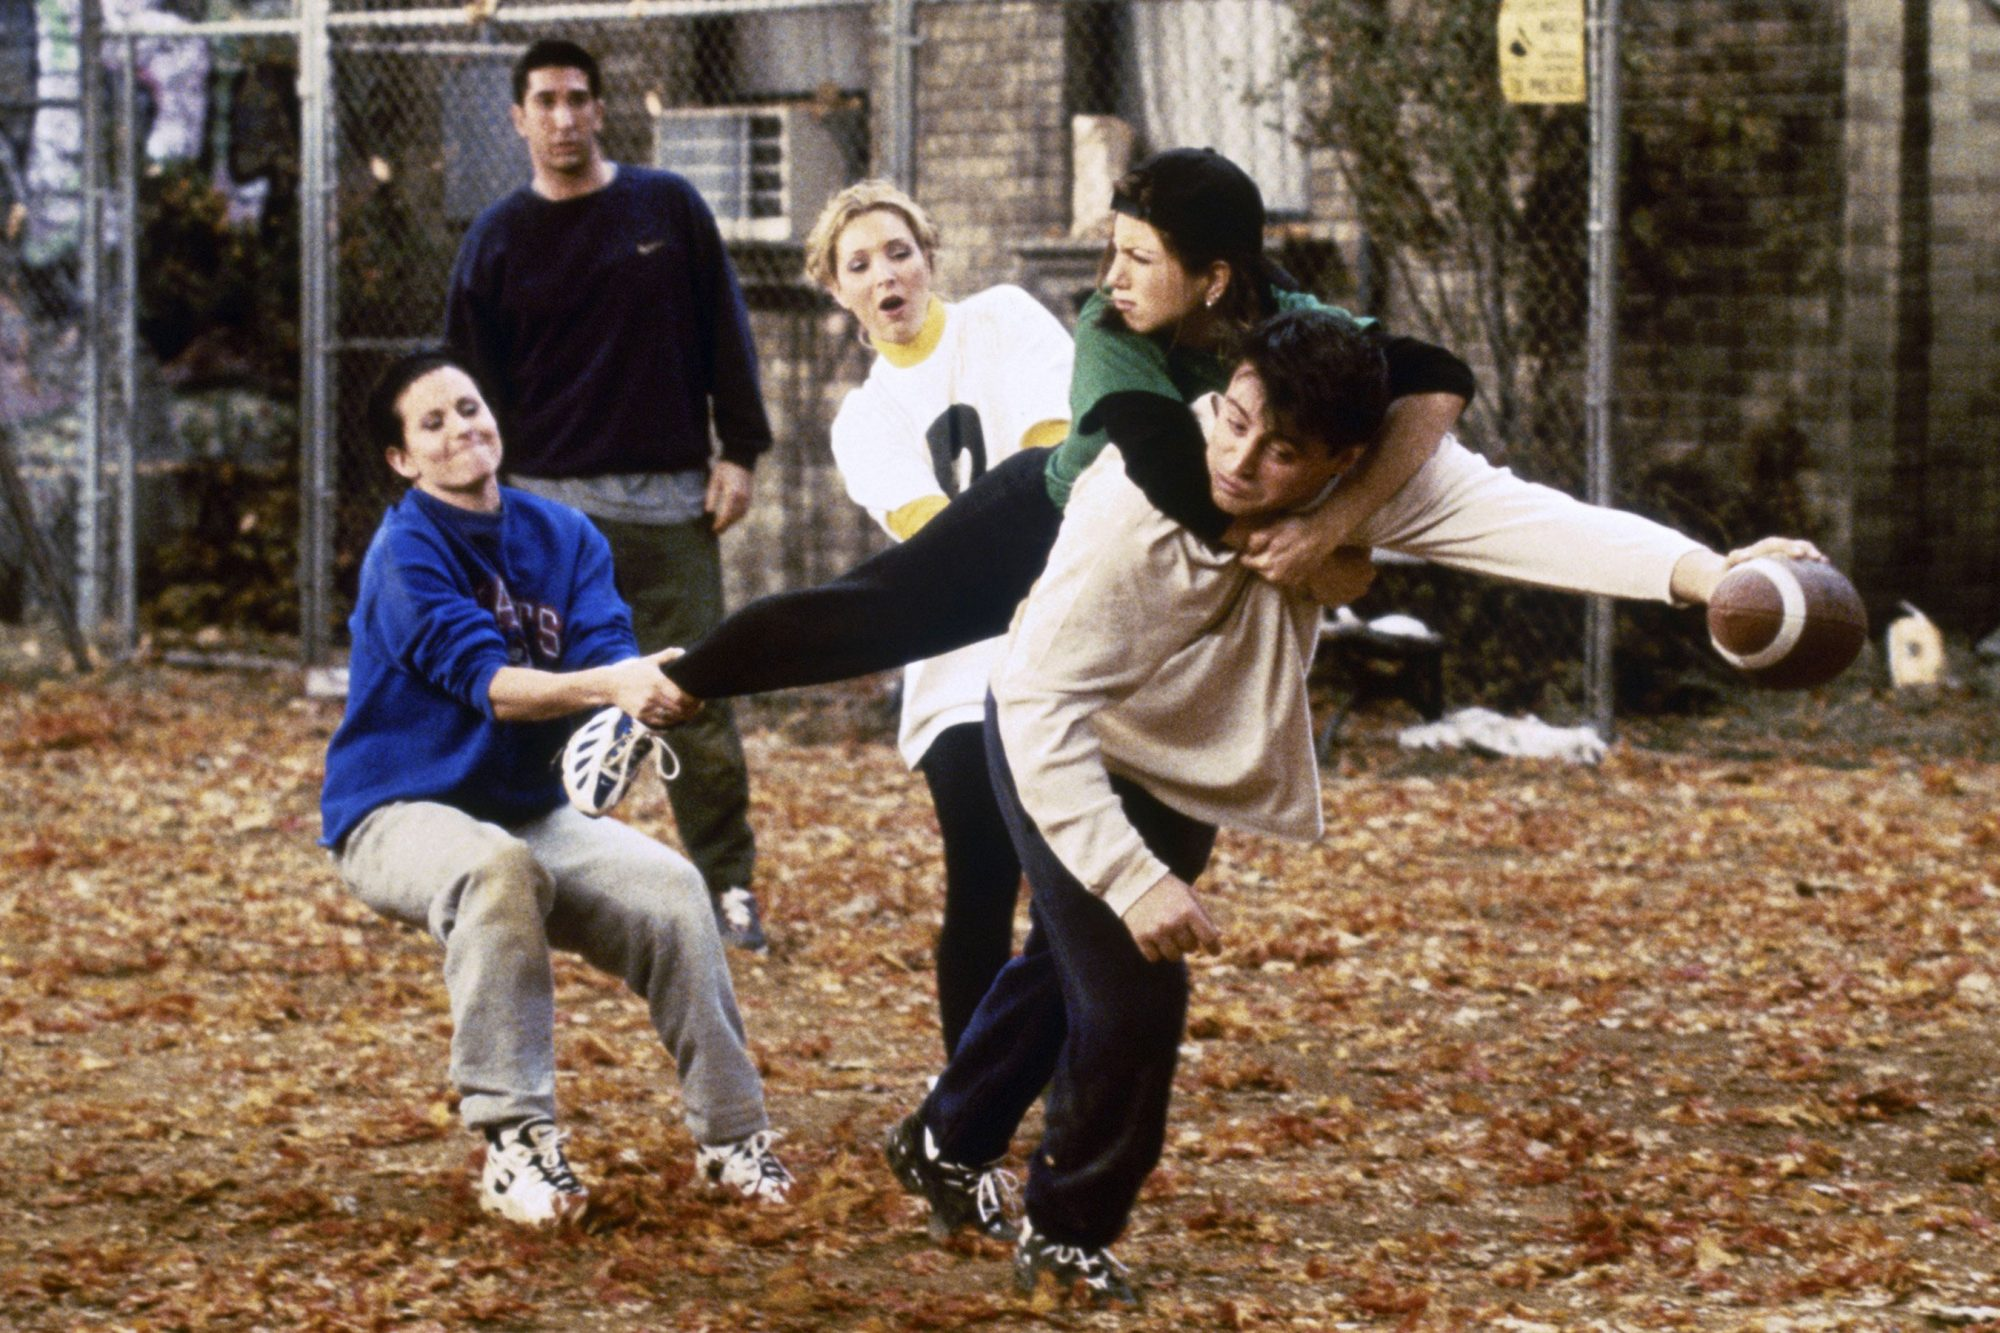 Friends: Behind the scenes of the Thanksgiving episode 'The One With the Football' | EW.com